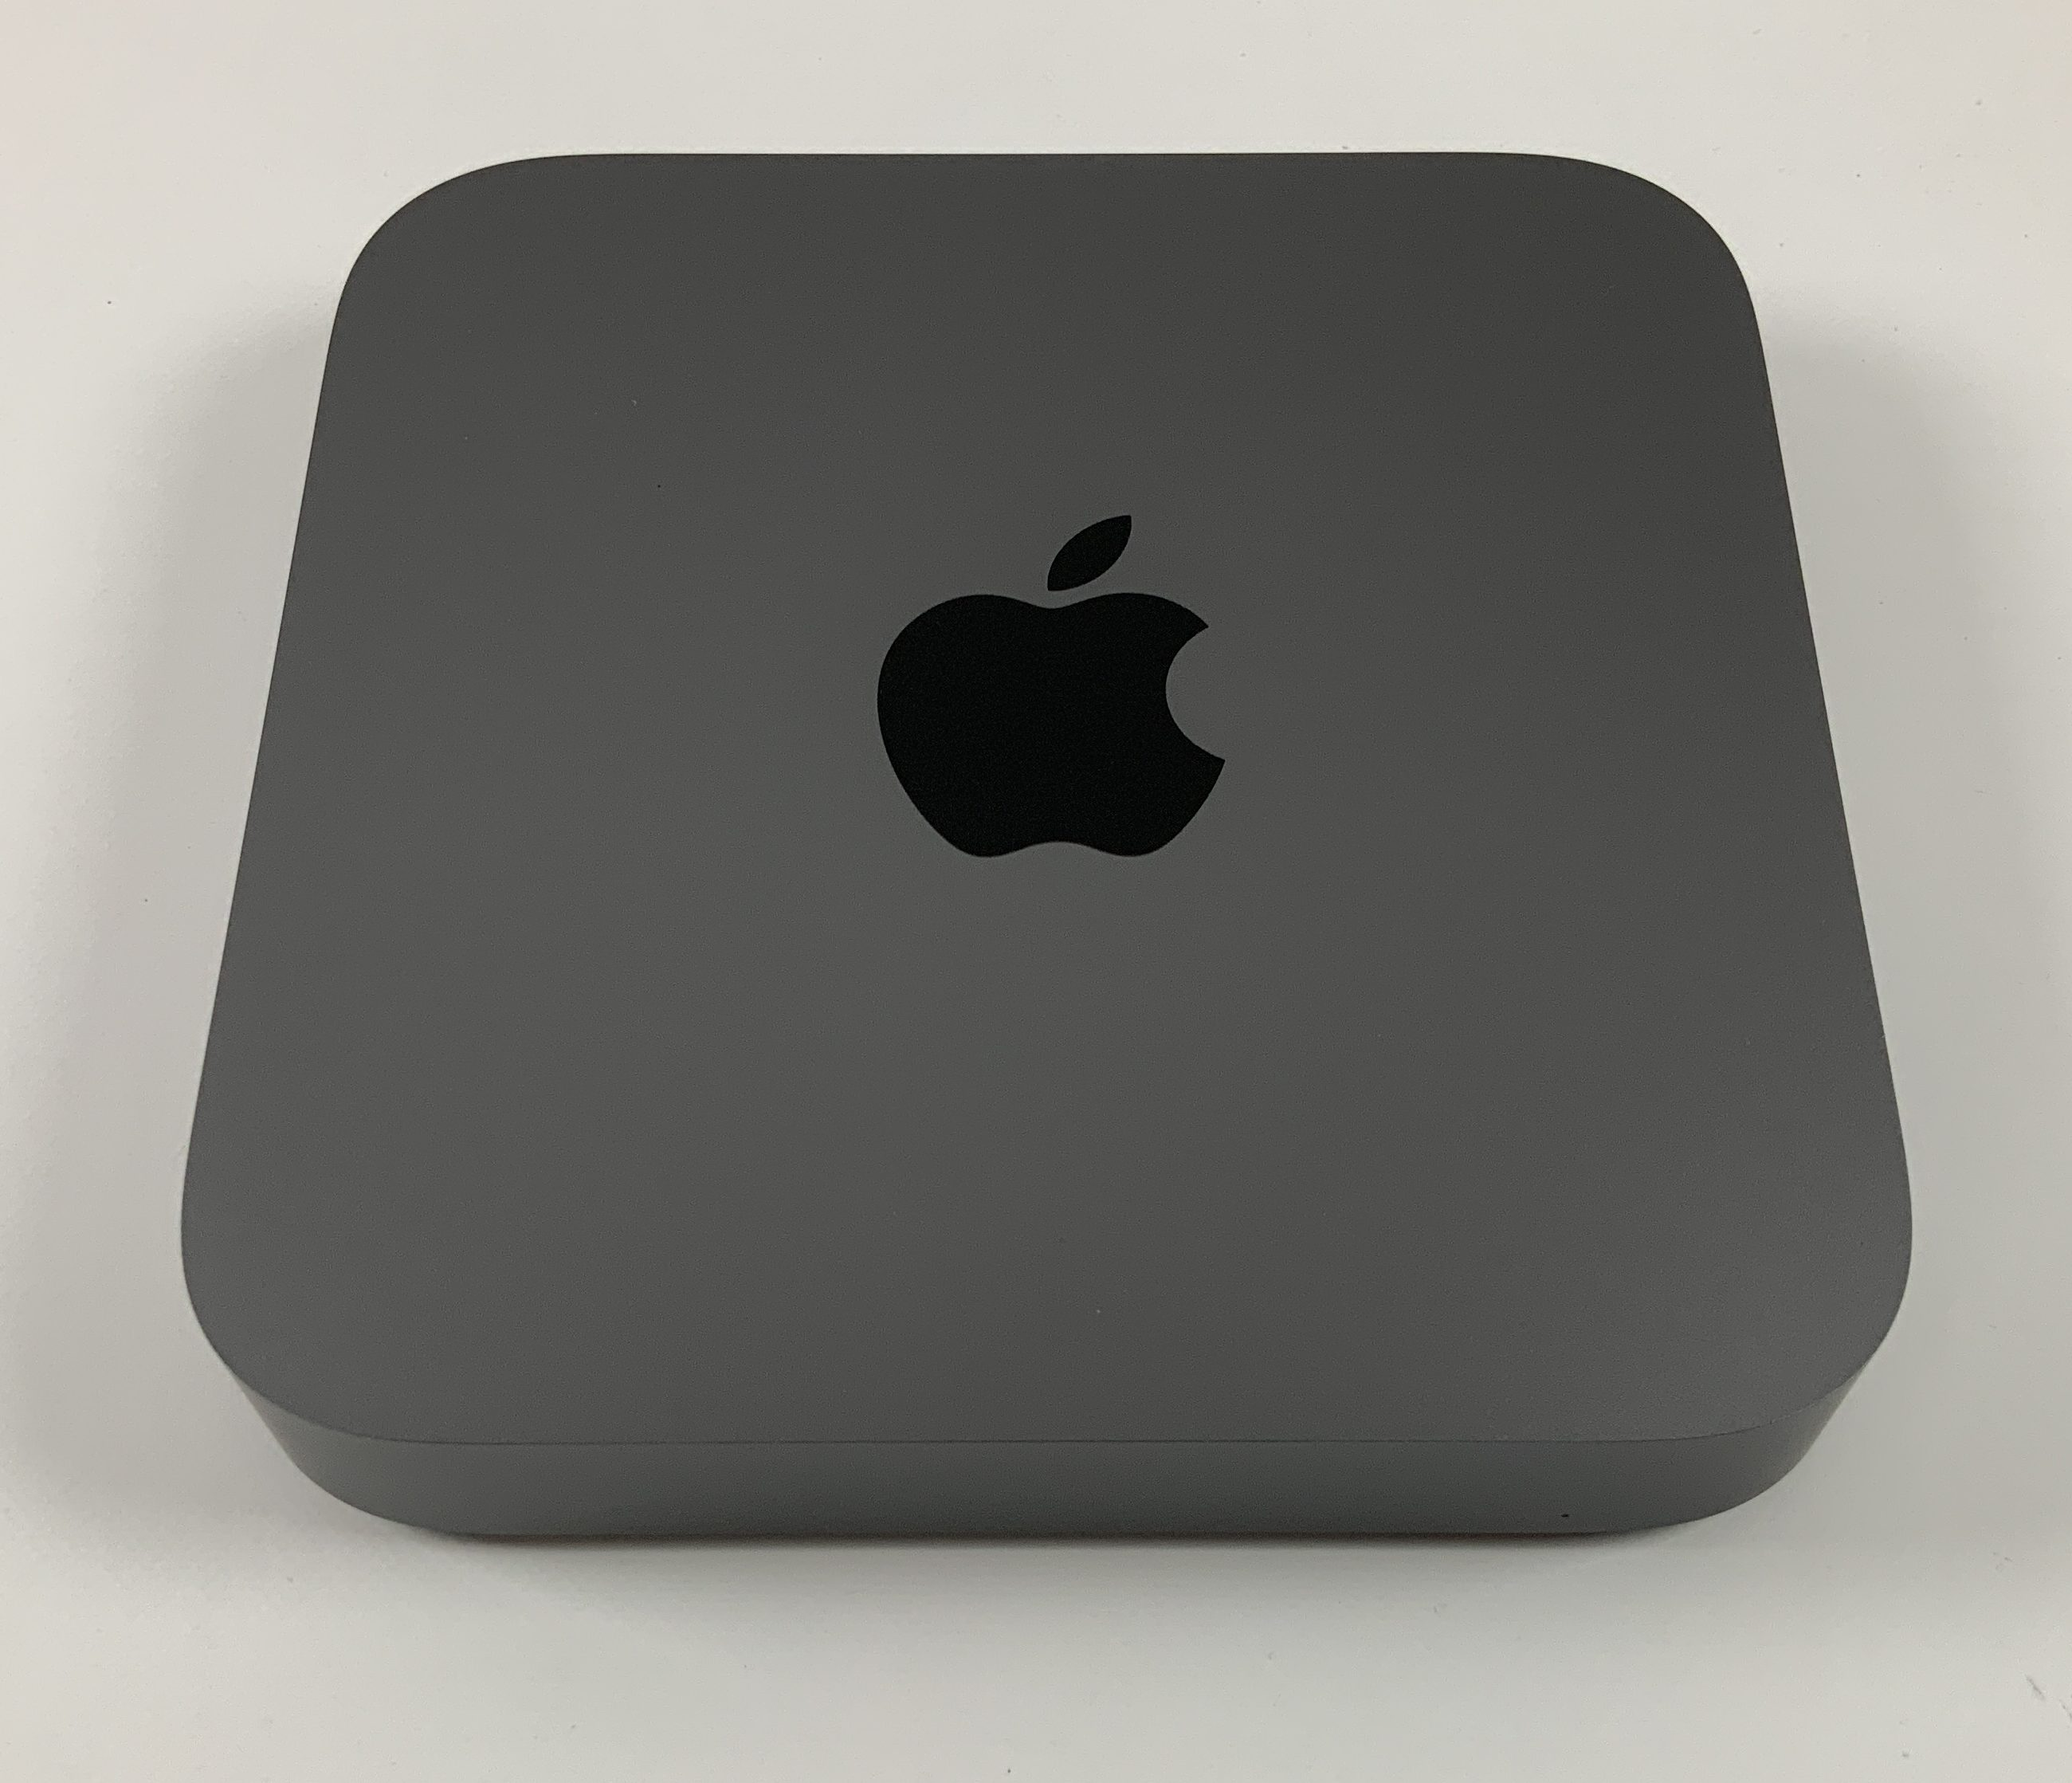 Mac Mini Late 2018 (Intel 6-Core i7 3.2 GHz 8 GB RAM 256 GB SSD), Intel 6-Core i7 3.2 GHz, 8 GB RAM, 256 GB SSD, image 1